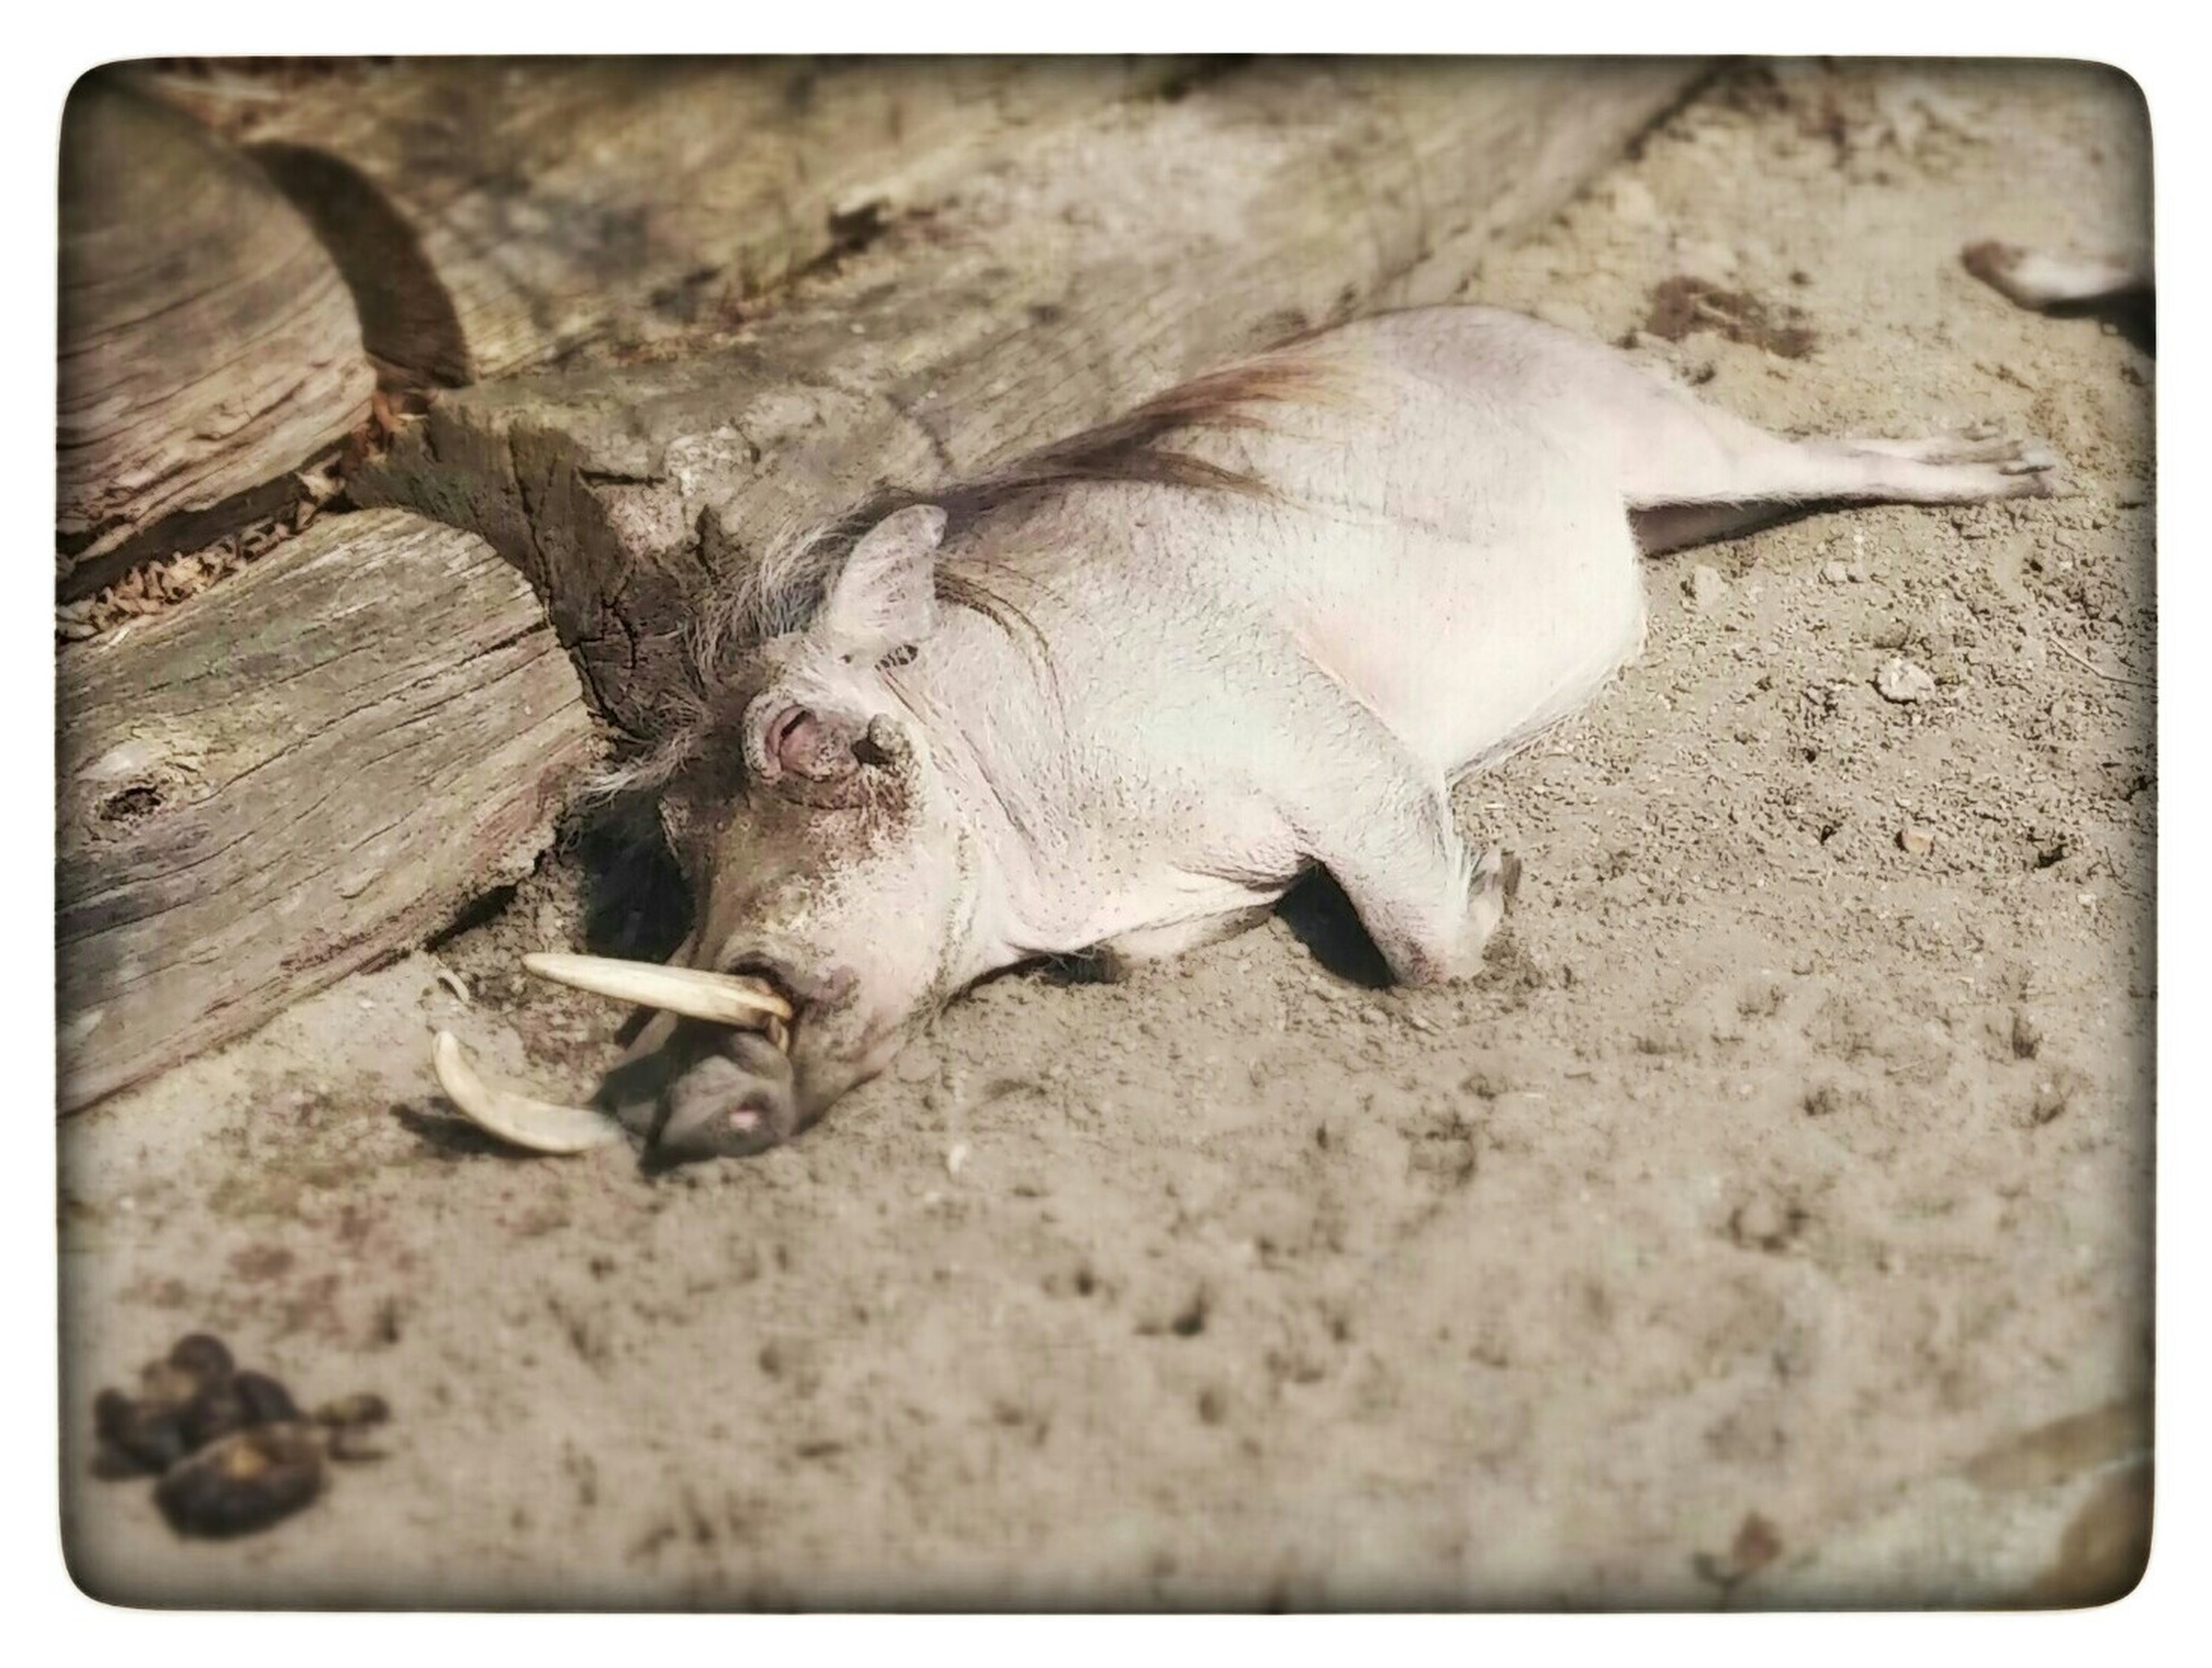 transfer print, animal themes, one animal, auto post production filter, wildlife, high angle view, dead animal, animals in the wild, ground, close-up, zoology, day, nature, outdoors, no people, death, dirt, dry, sand, stone - object